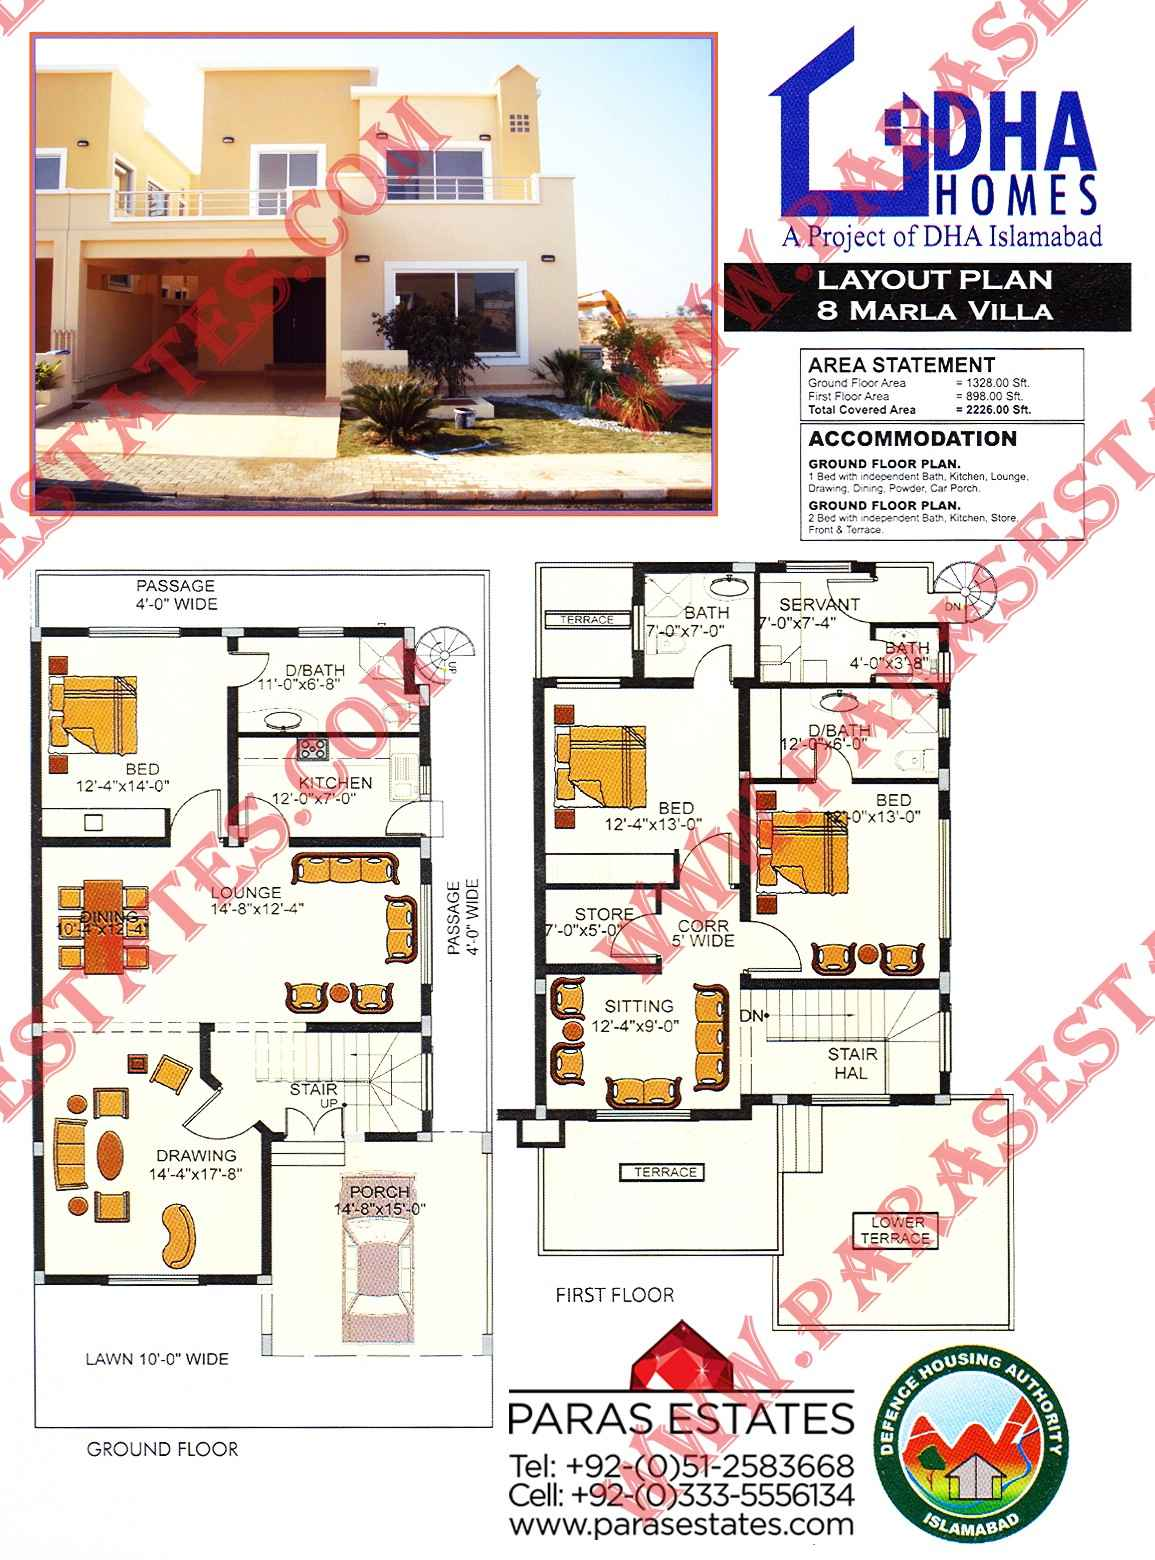 Pin Layout Plan Dha Homes 5 Marla on Pinterest